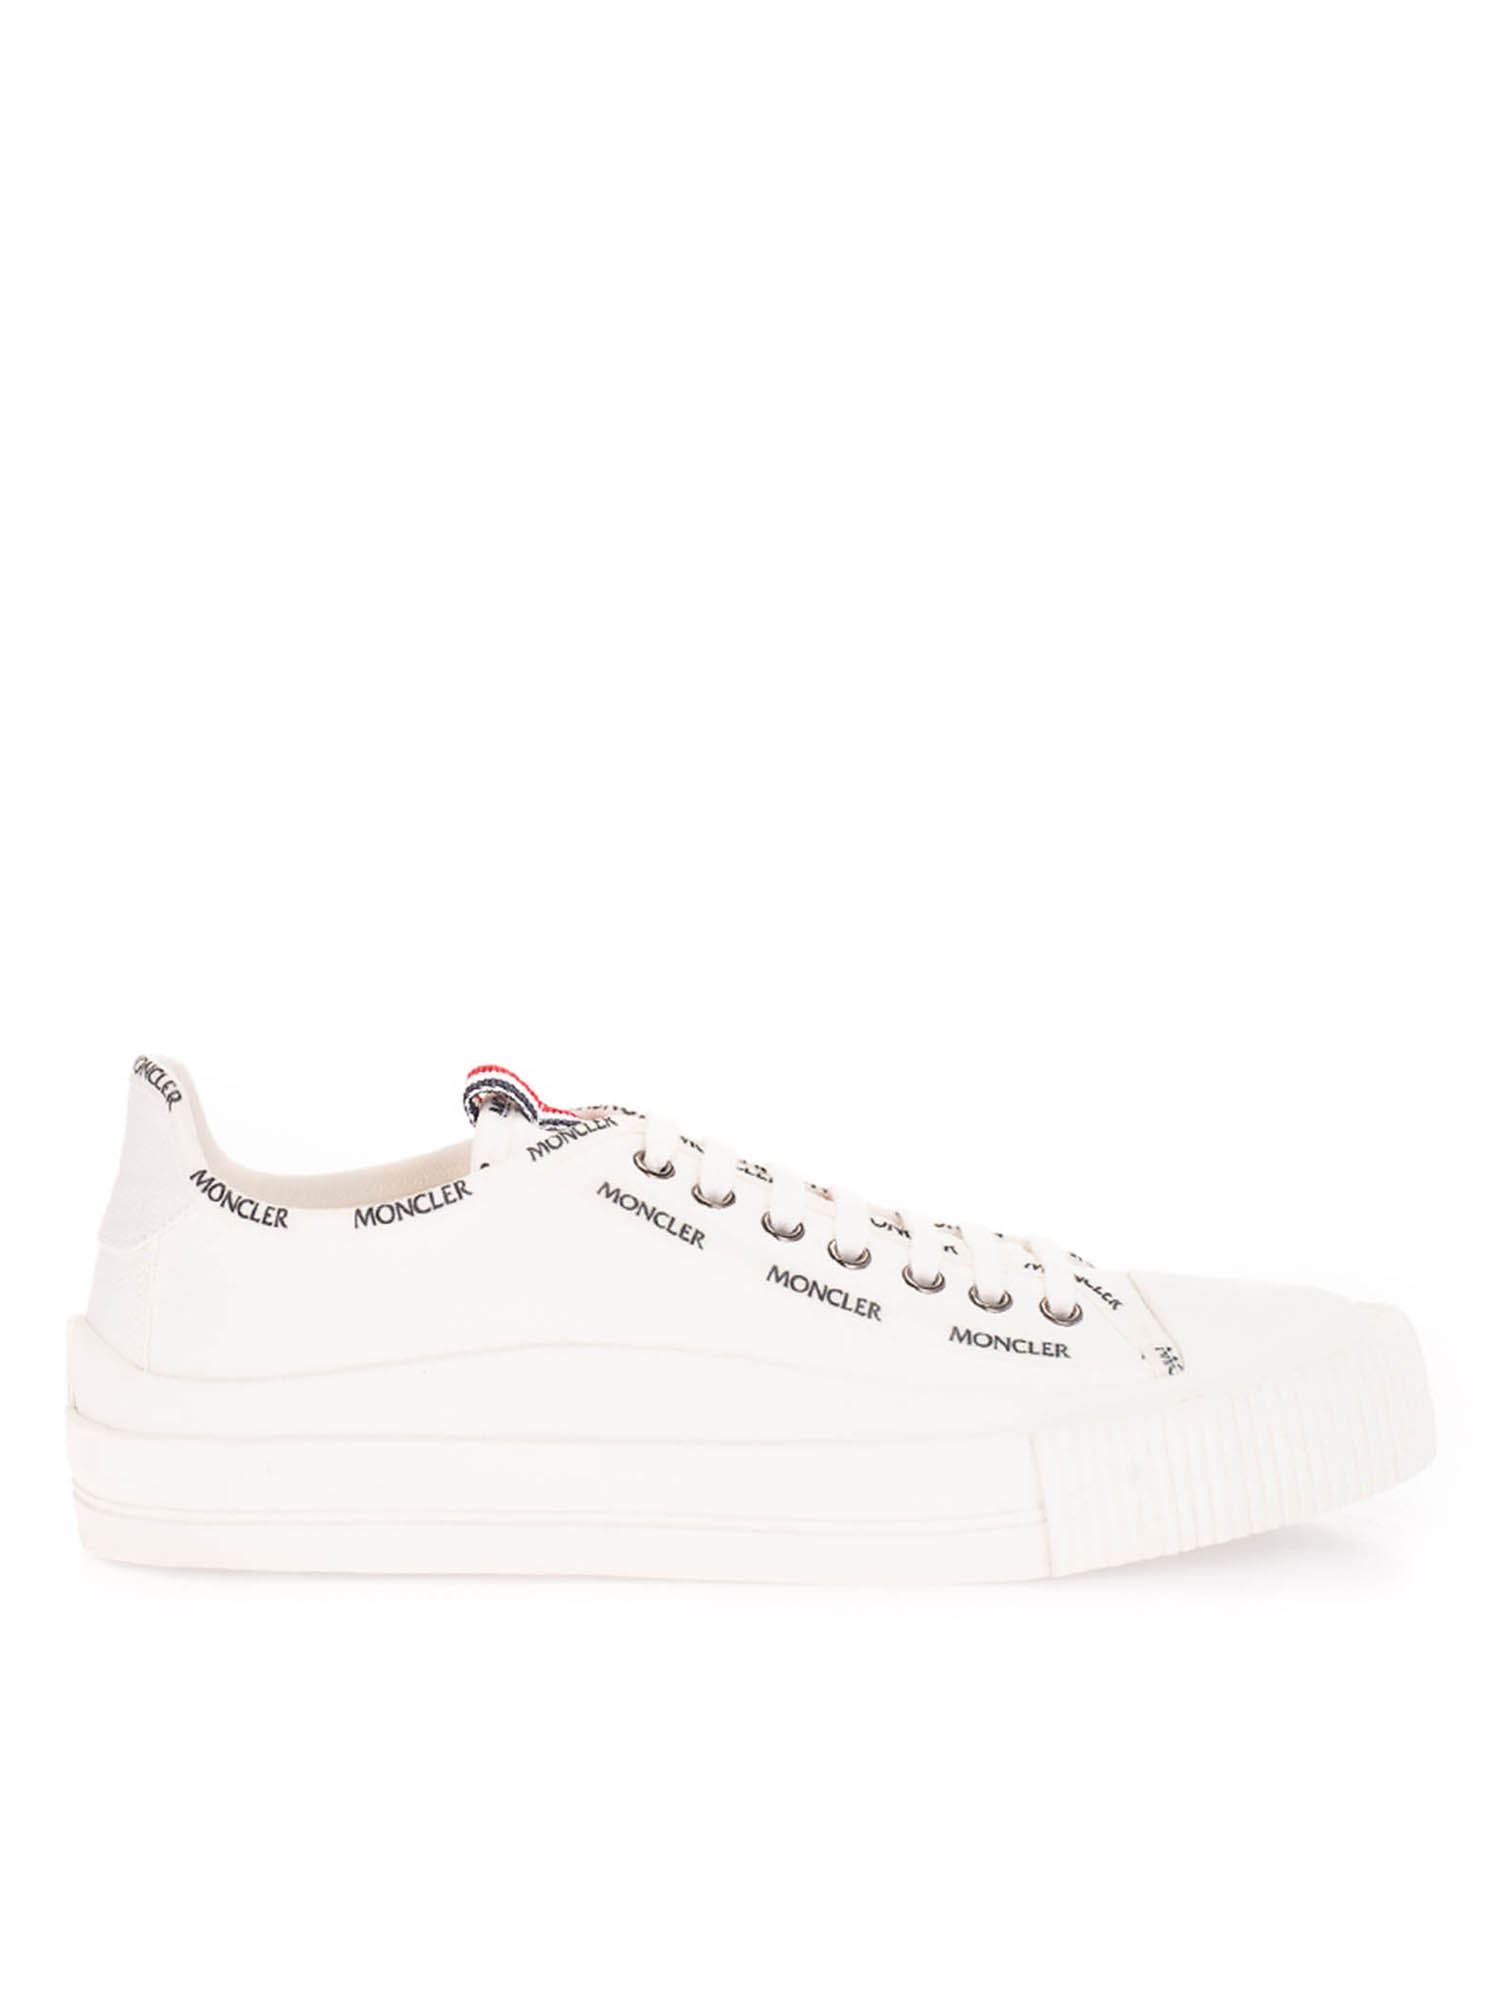 Moncler Canvases LOGO SNEAKERS IN WHITE